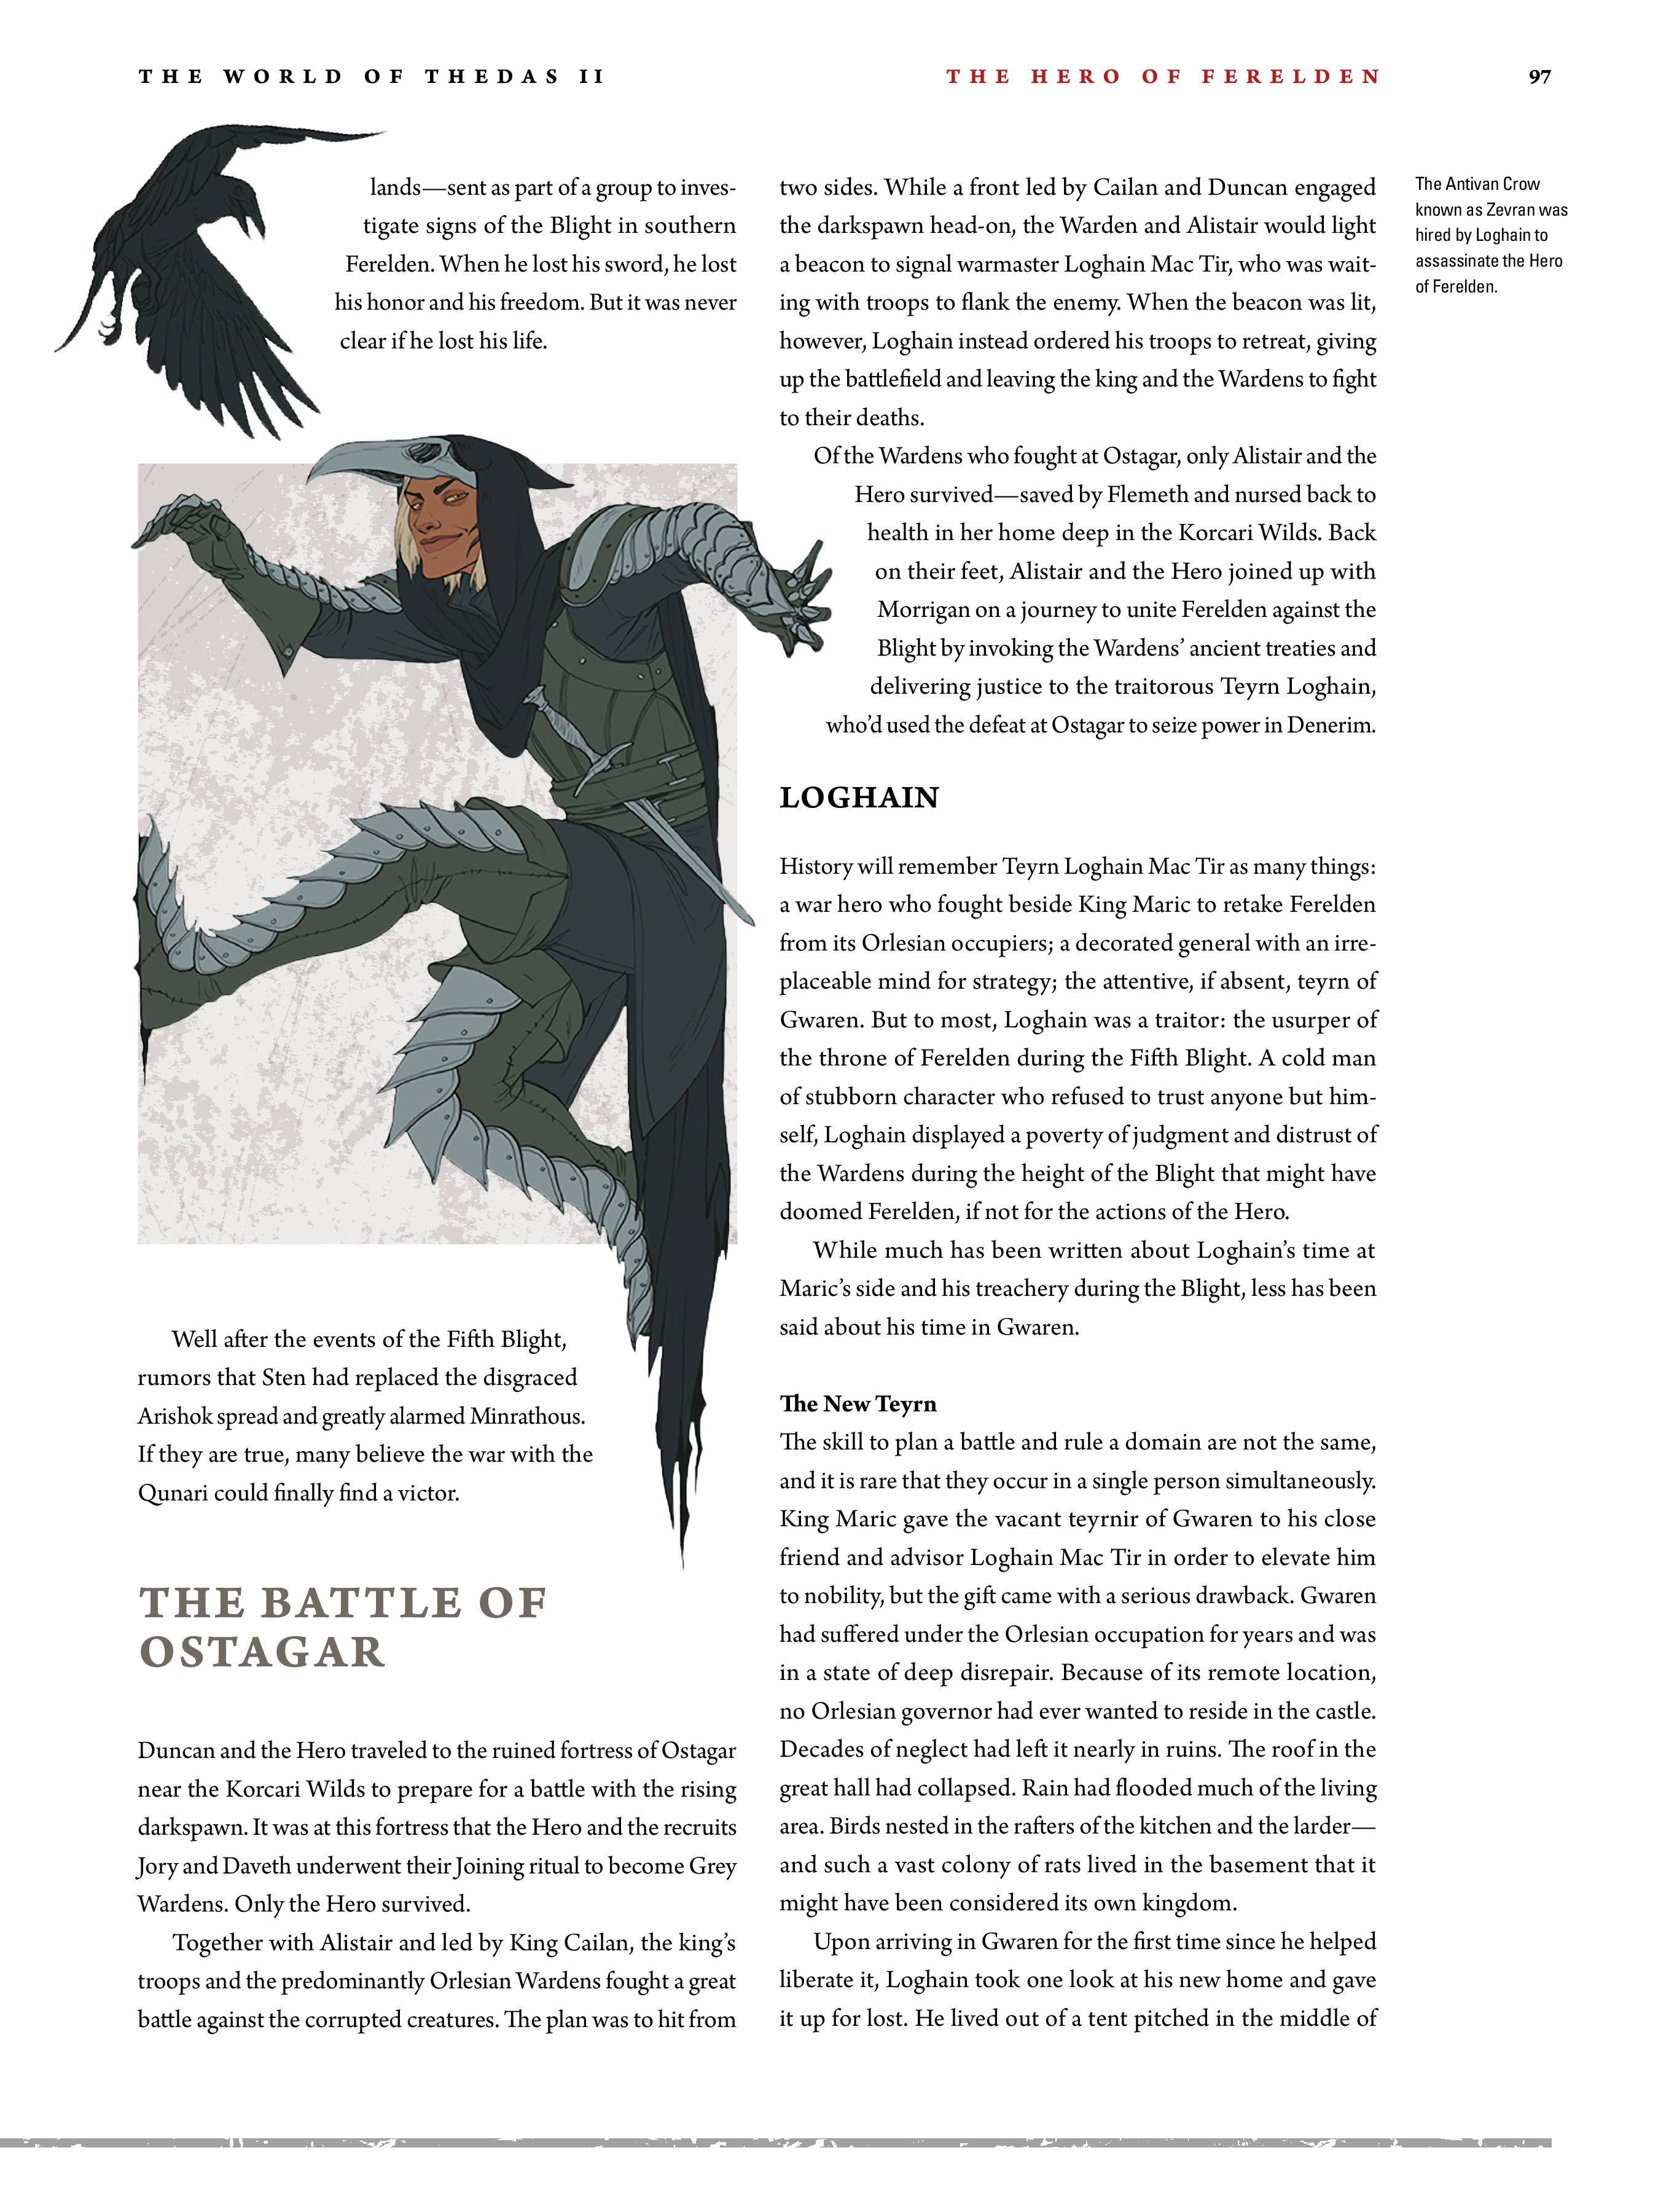 Read online Dragon Age: The World of Thedas comic -  Issue # TPB 2 - 93